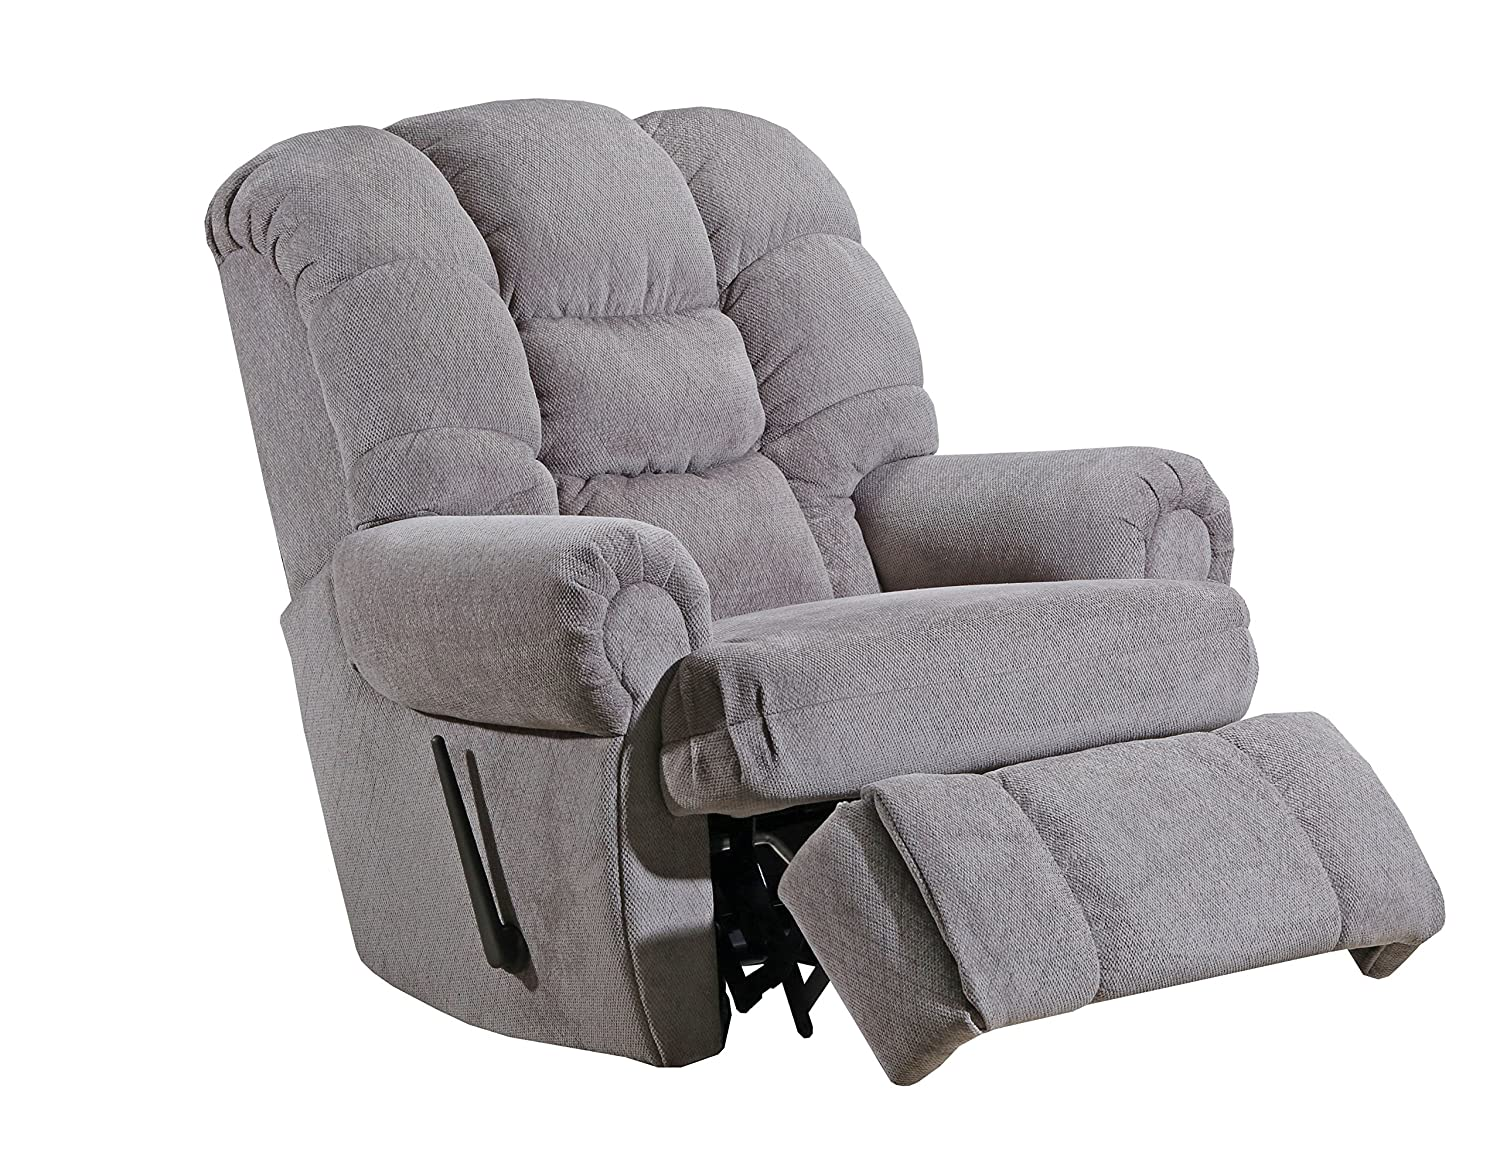 What's The Best Heavy Duty Recliners For Big Men Up To 500 ...